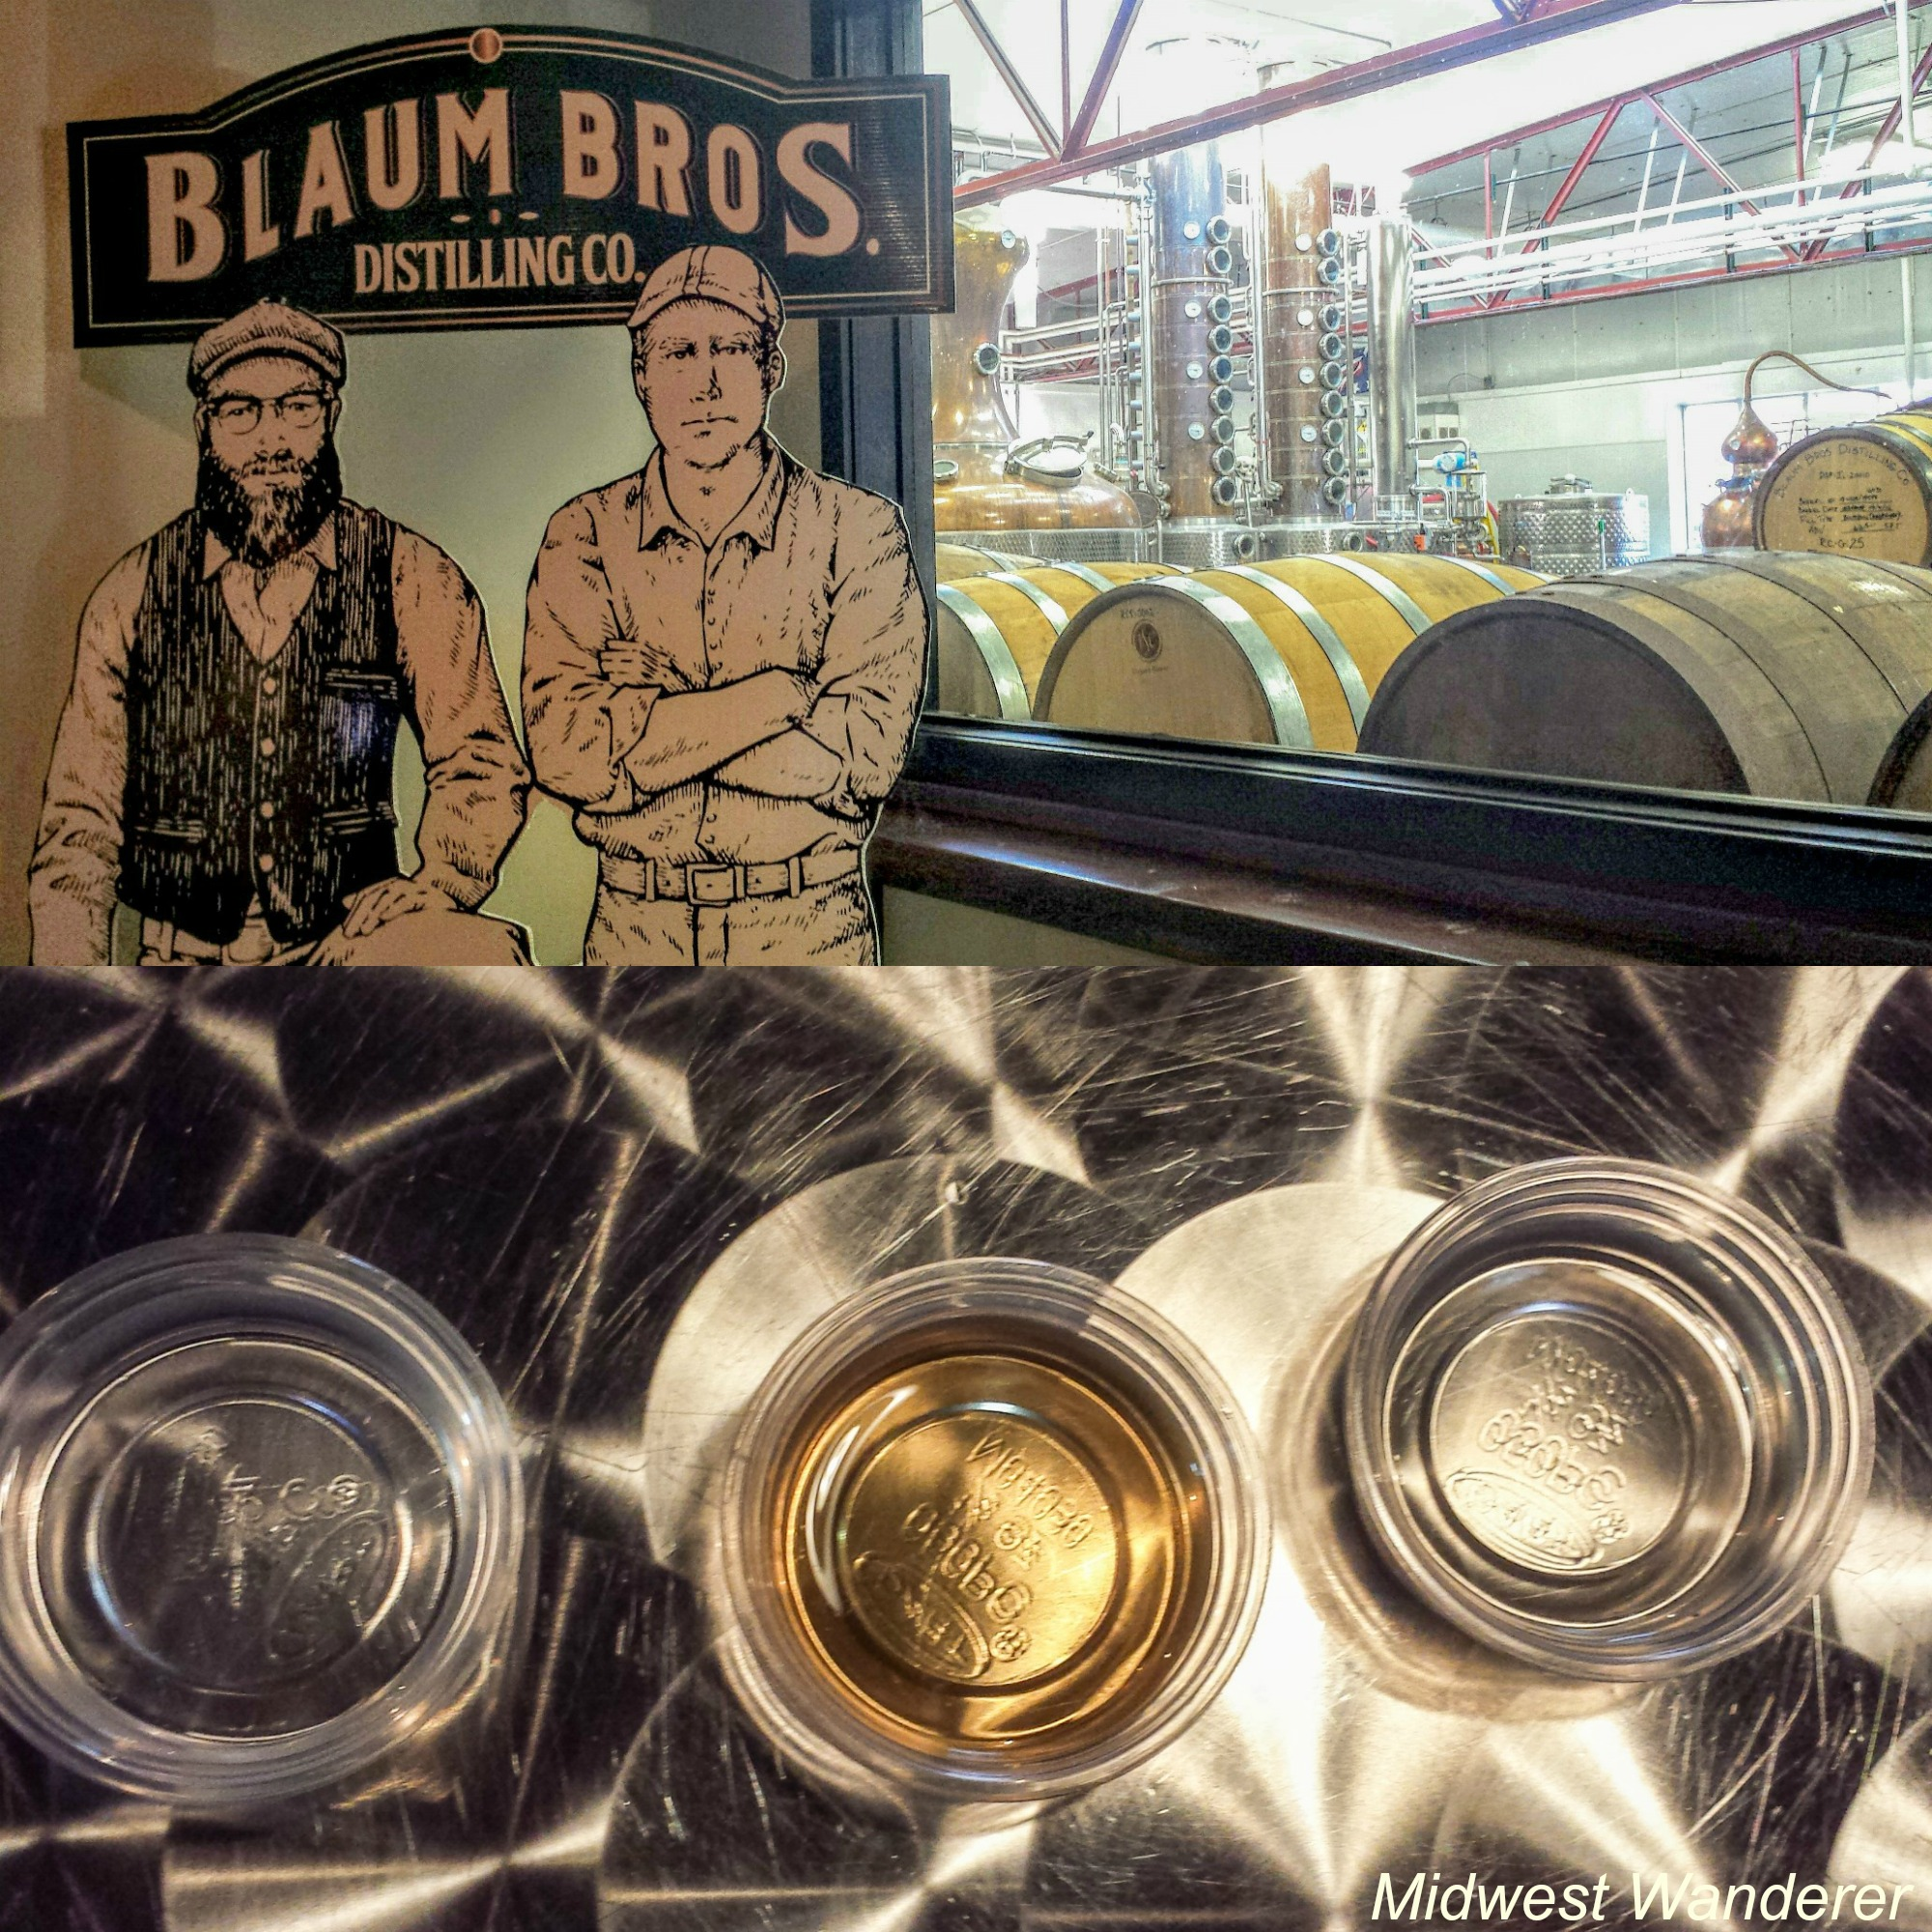 Blaum Bros Distilling Co